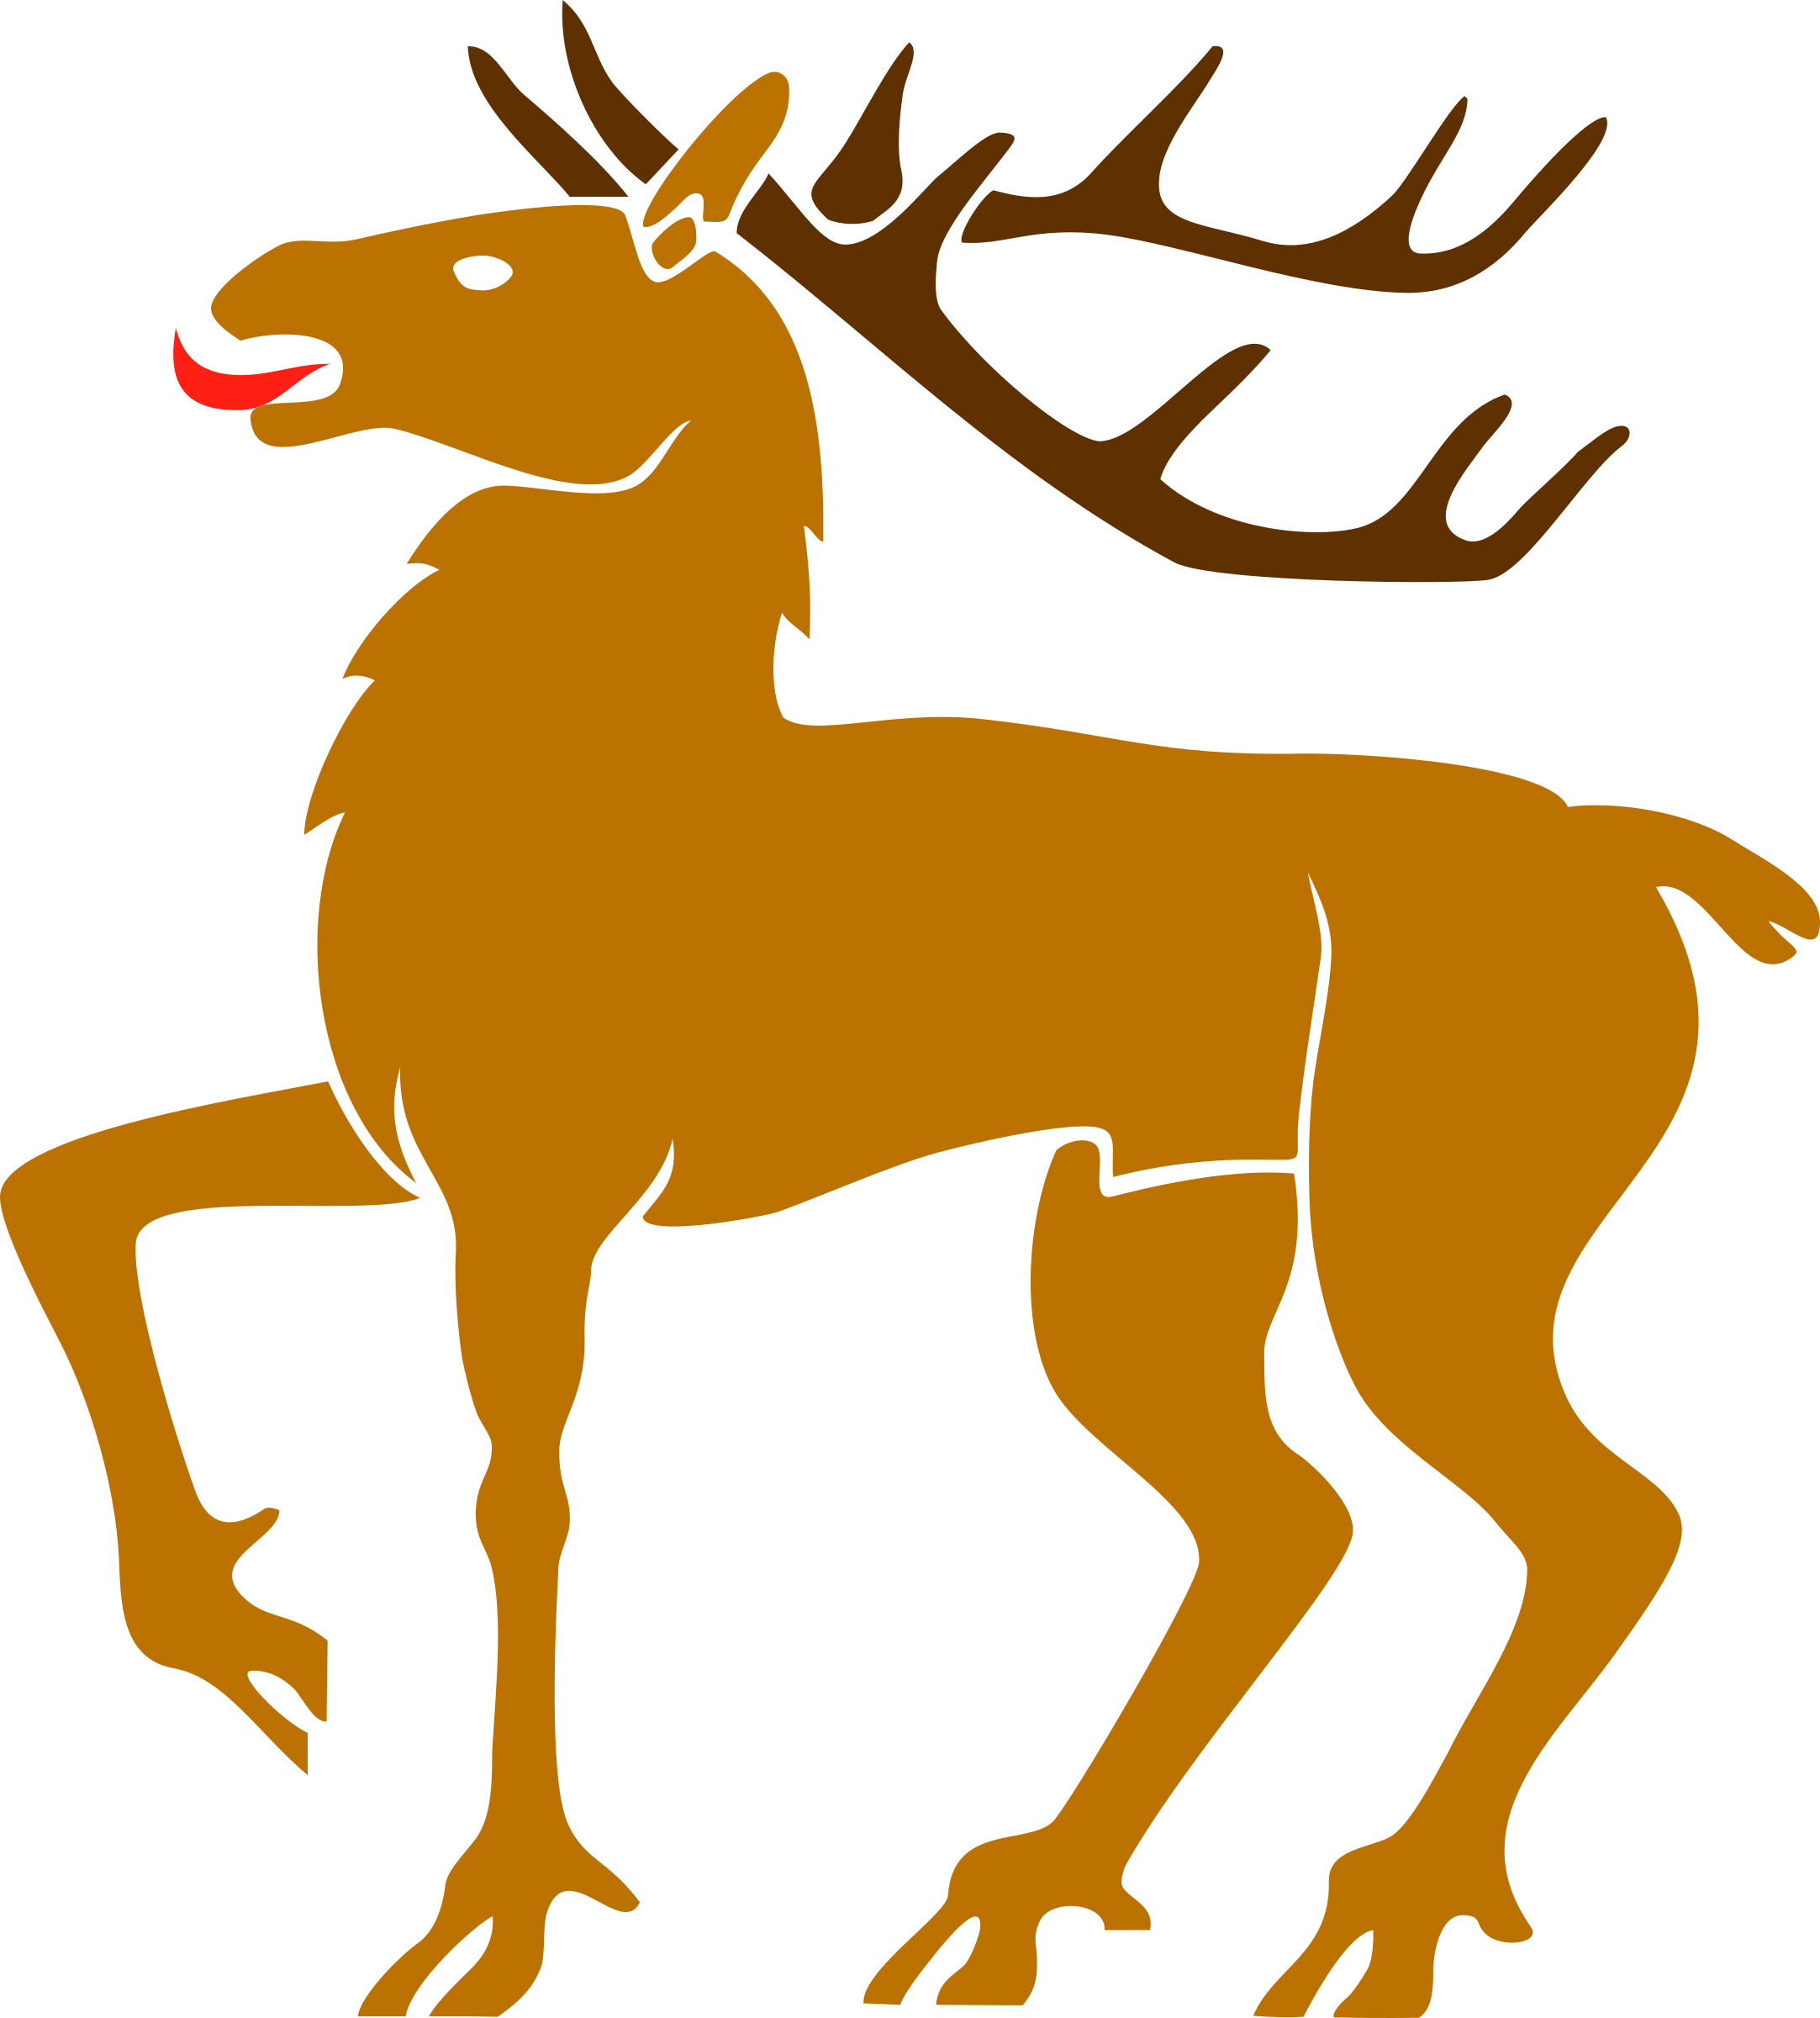 Clipart reindeer icon. Stag big image png